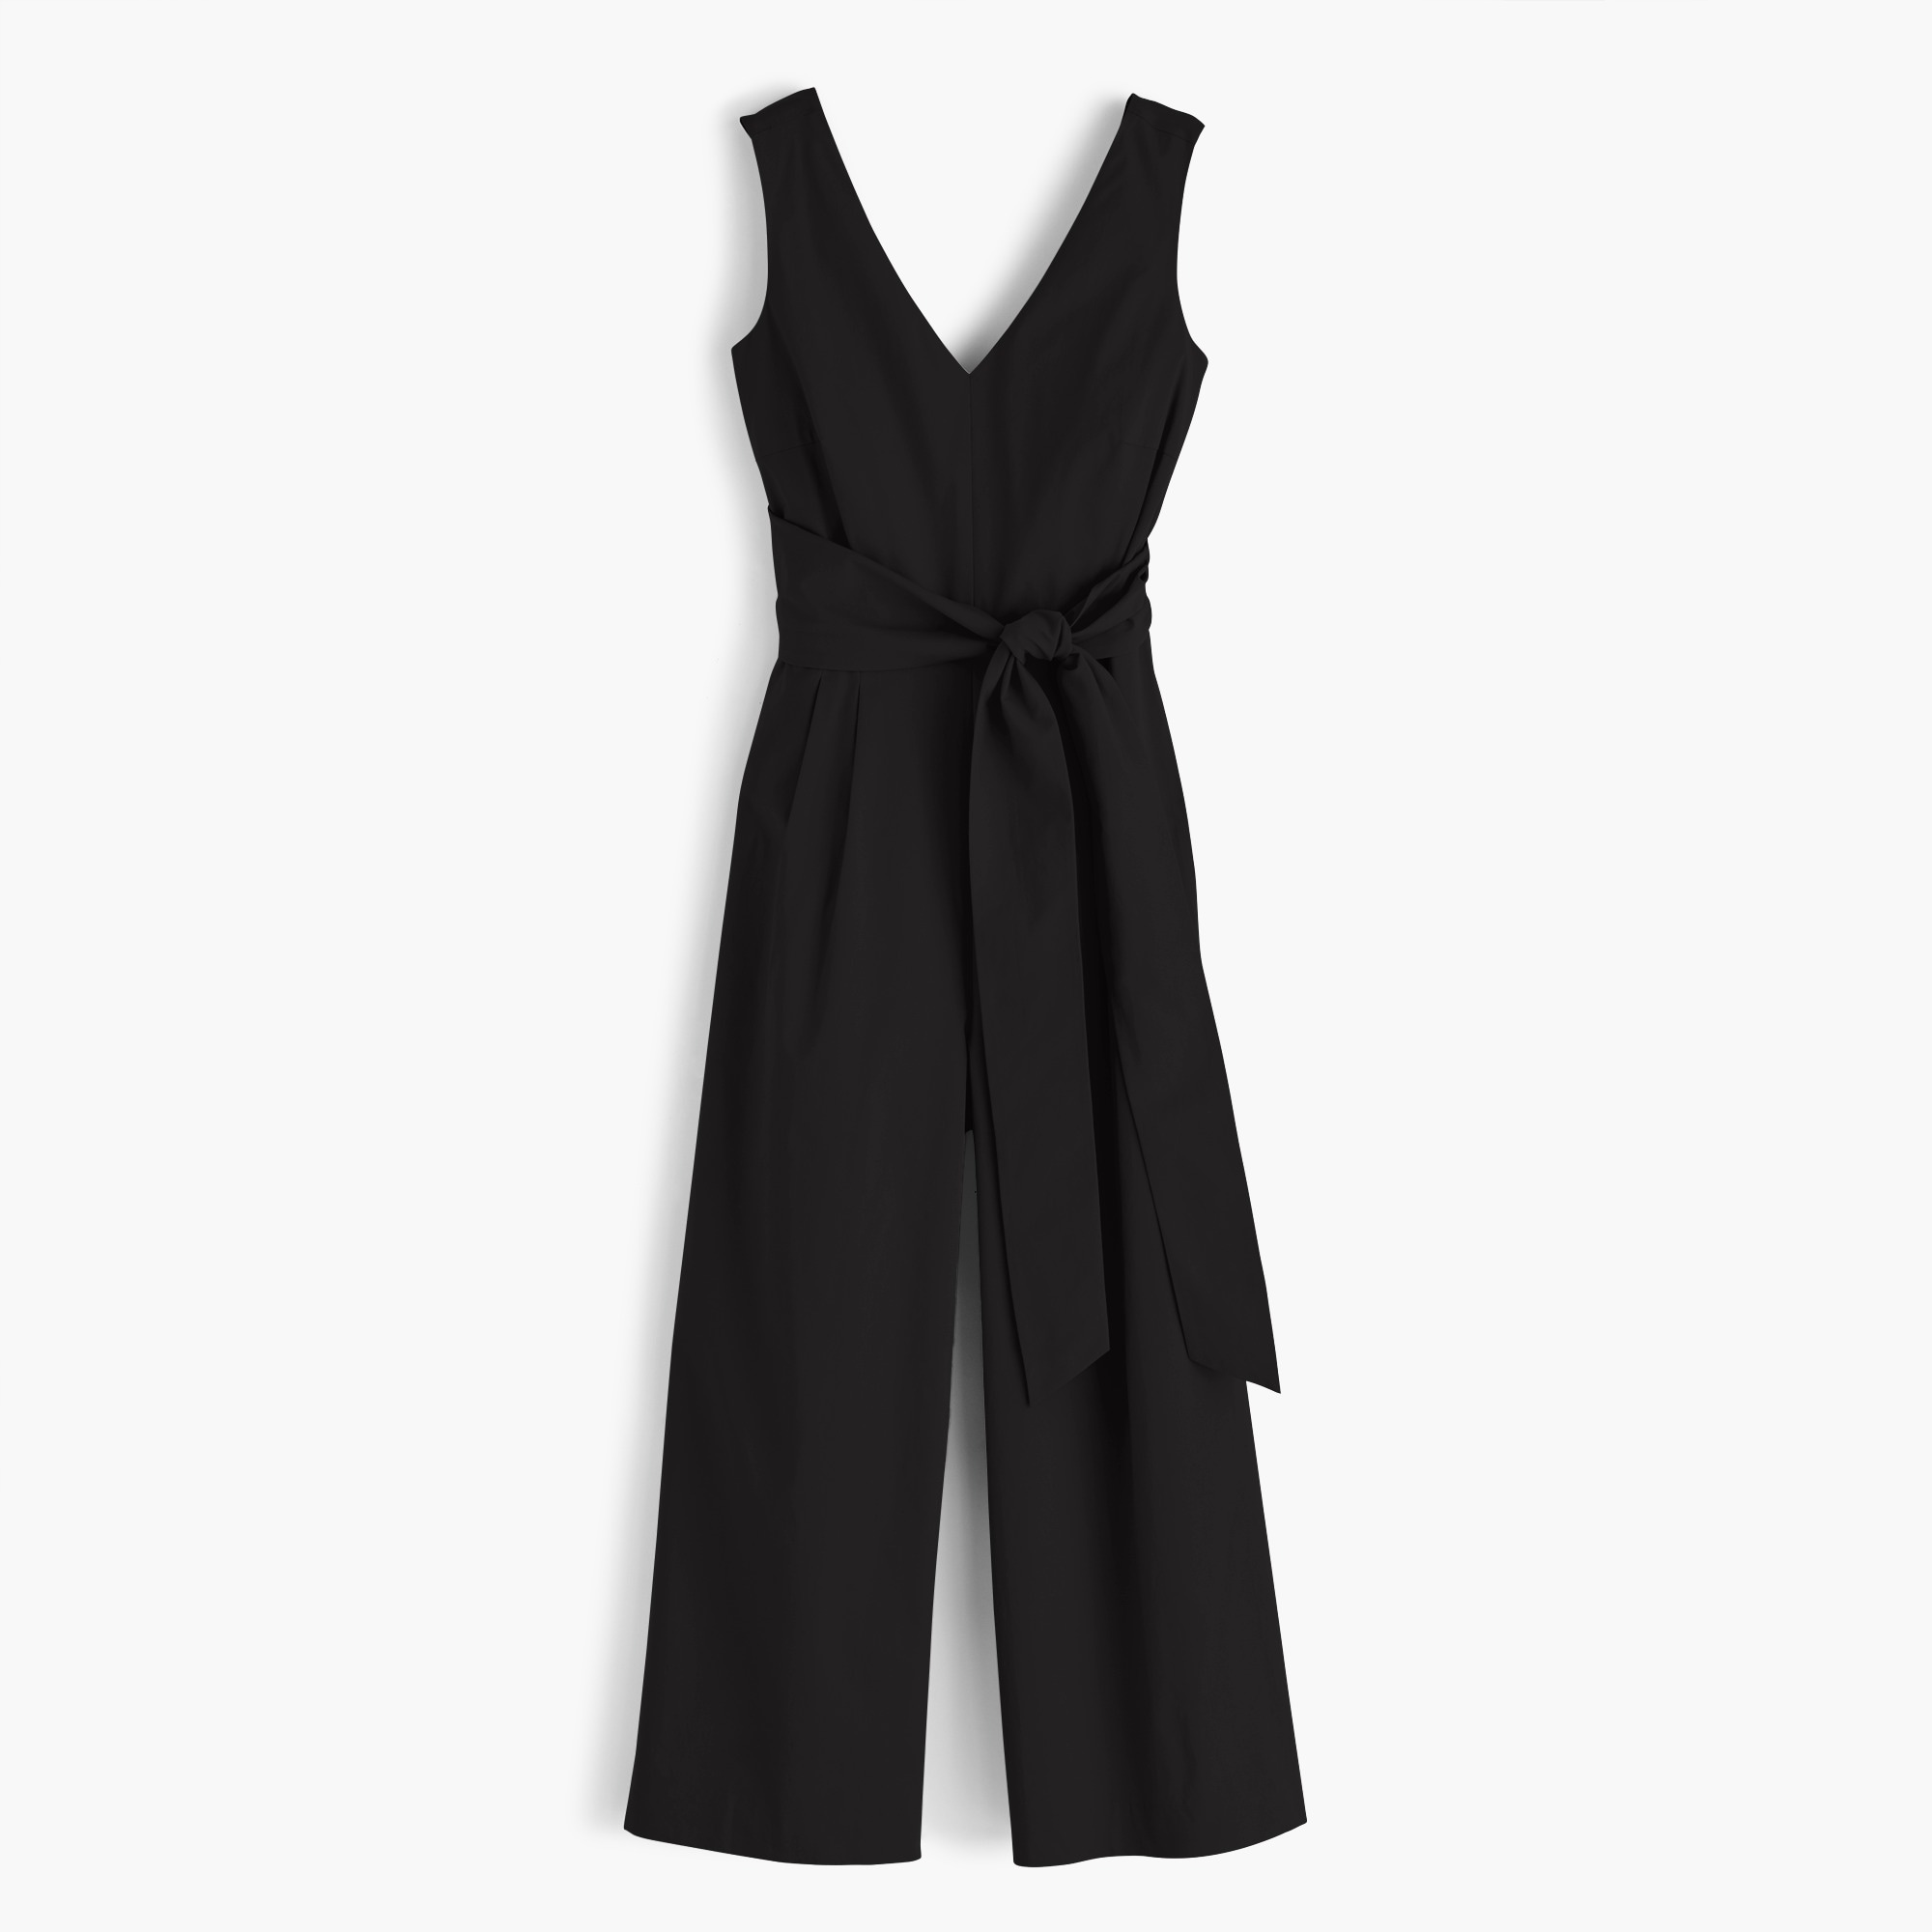 Image 7 for Wrap-tie jumpsuit in stretch poplin